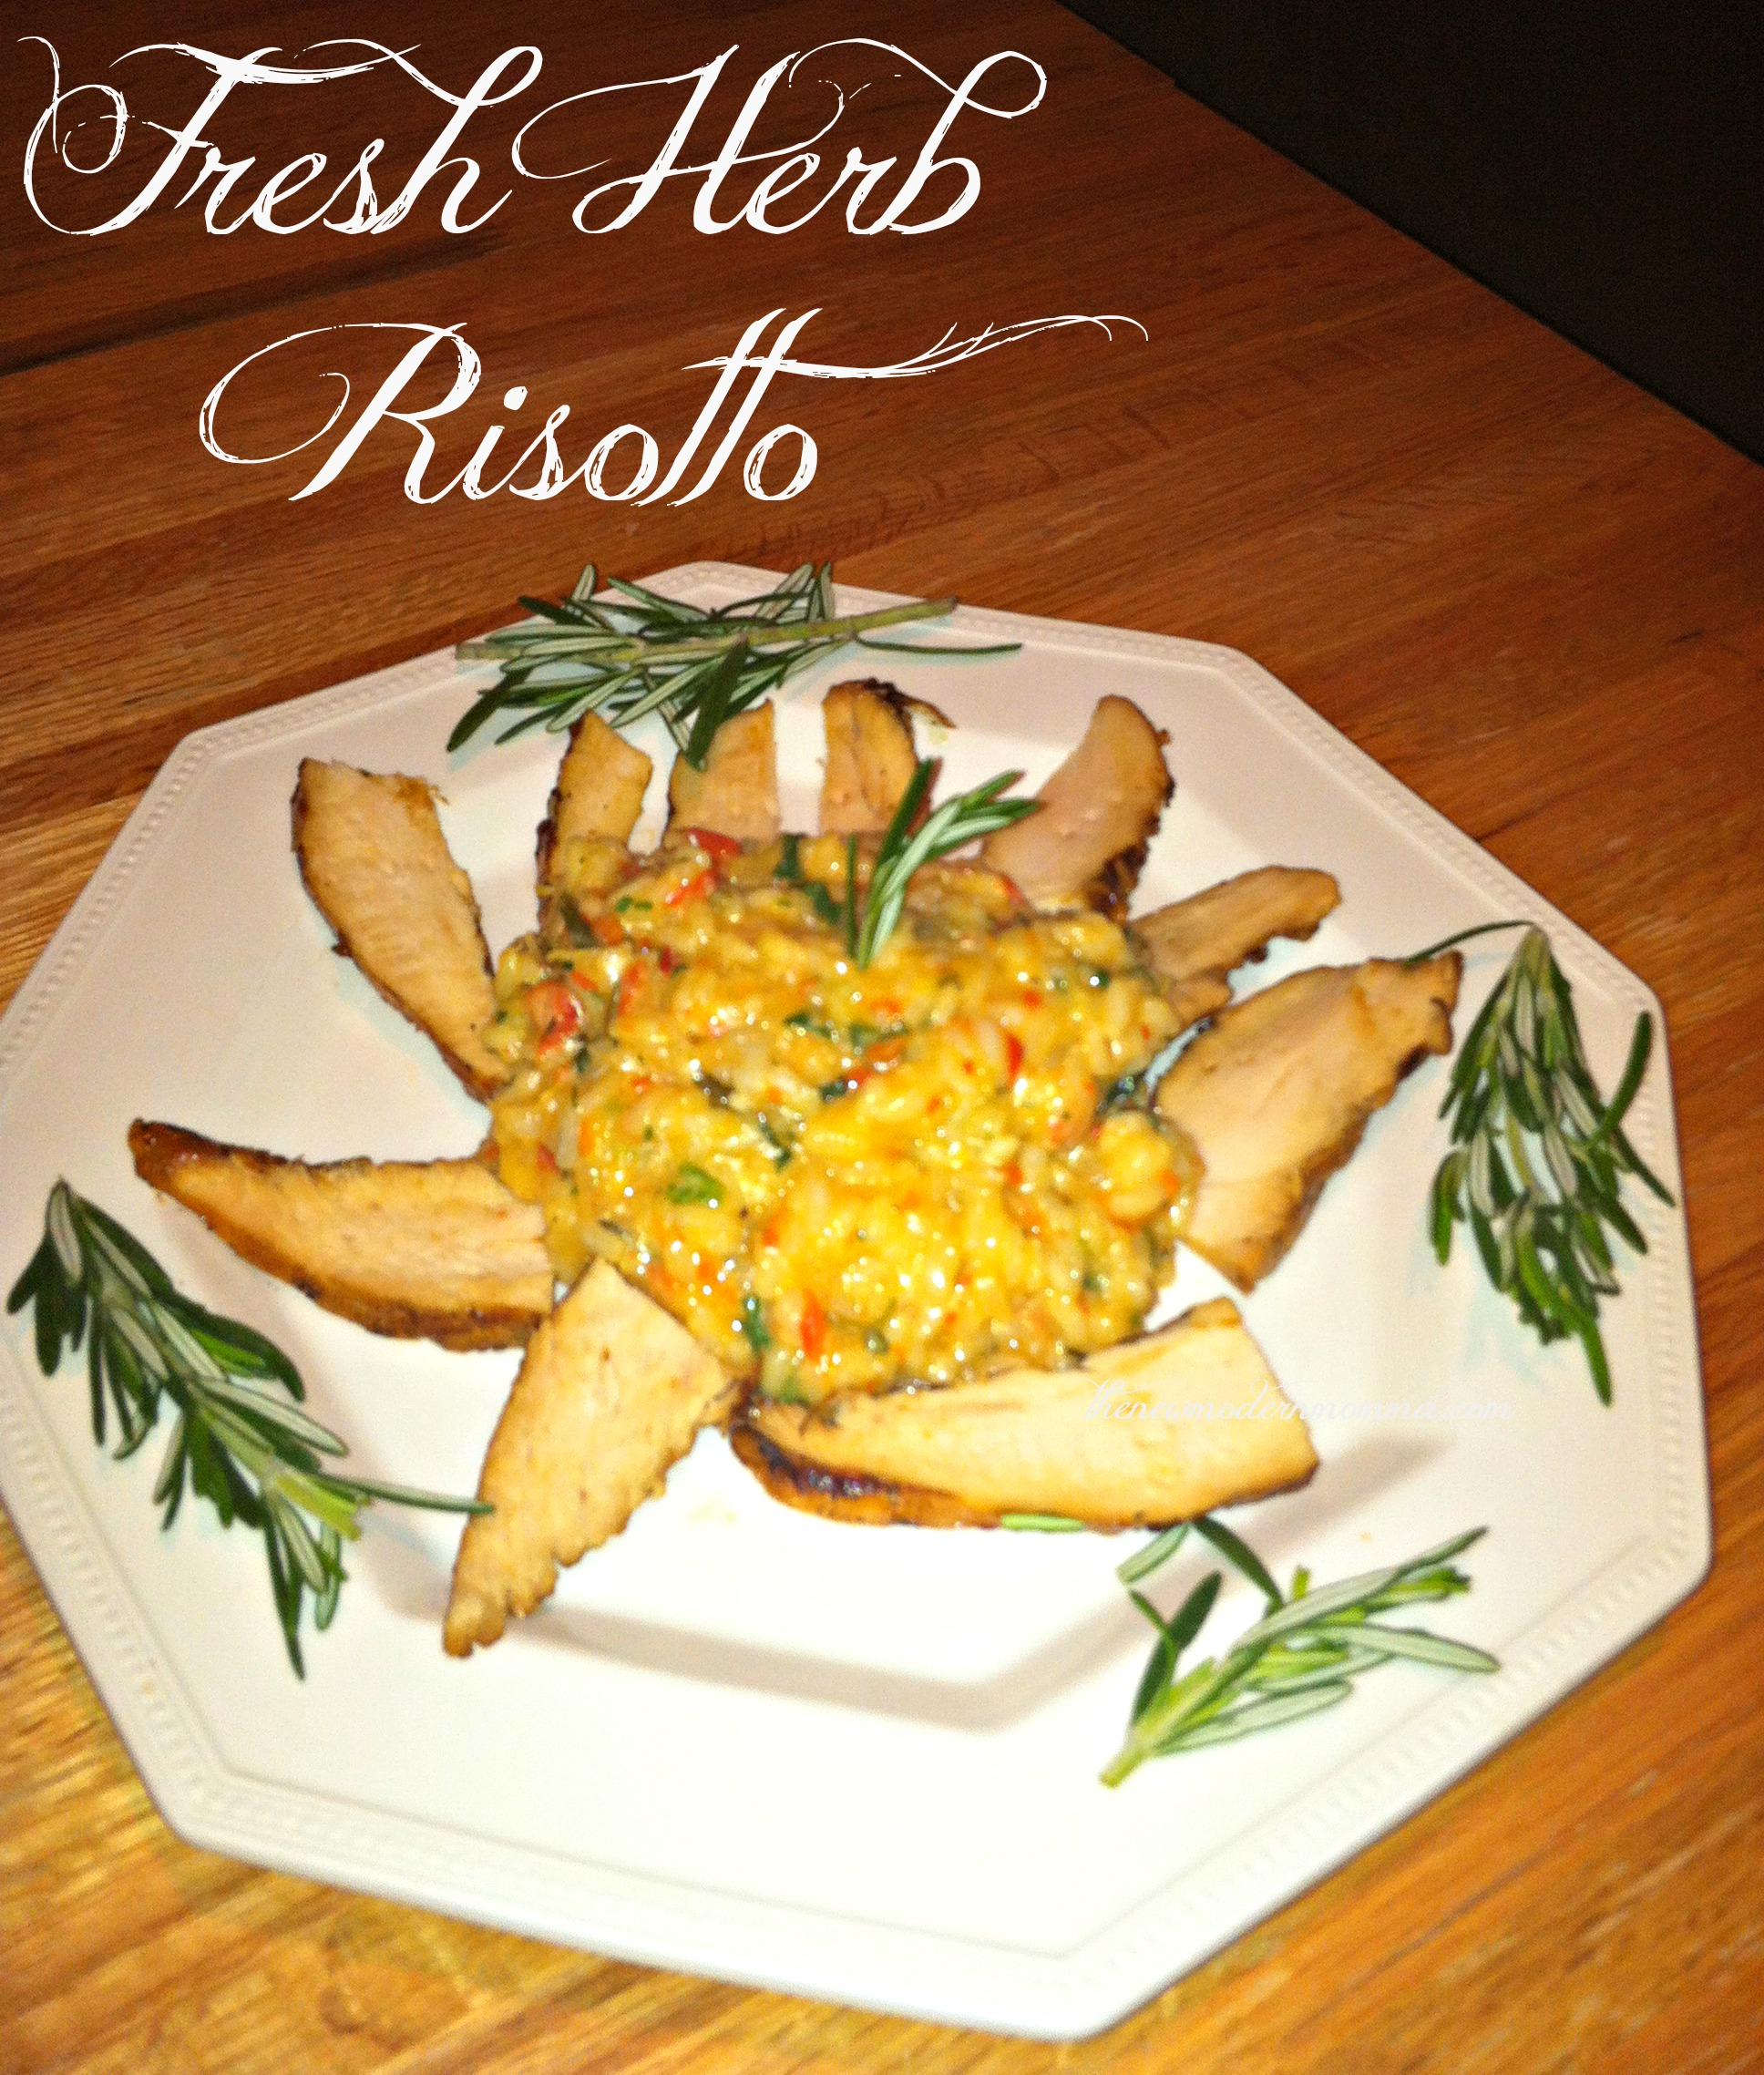 Herbed Risotto | Tasty Tuesday Recipe Swap